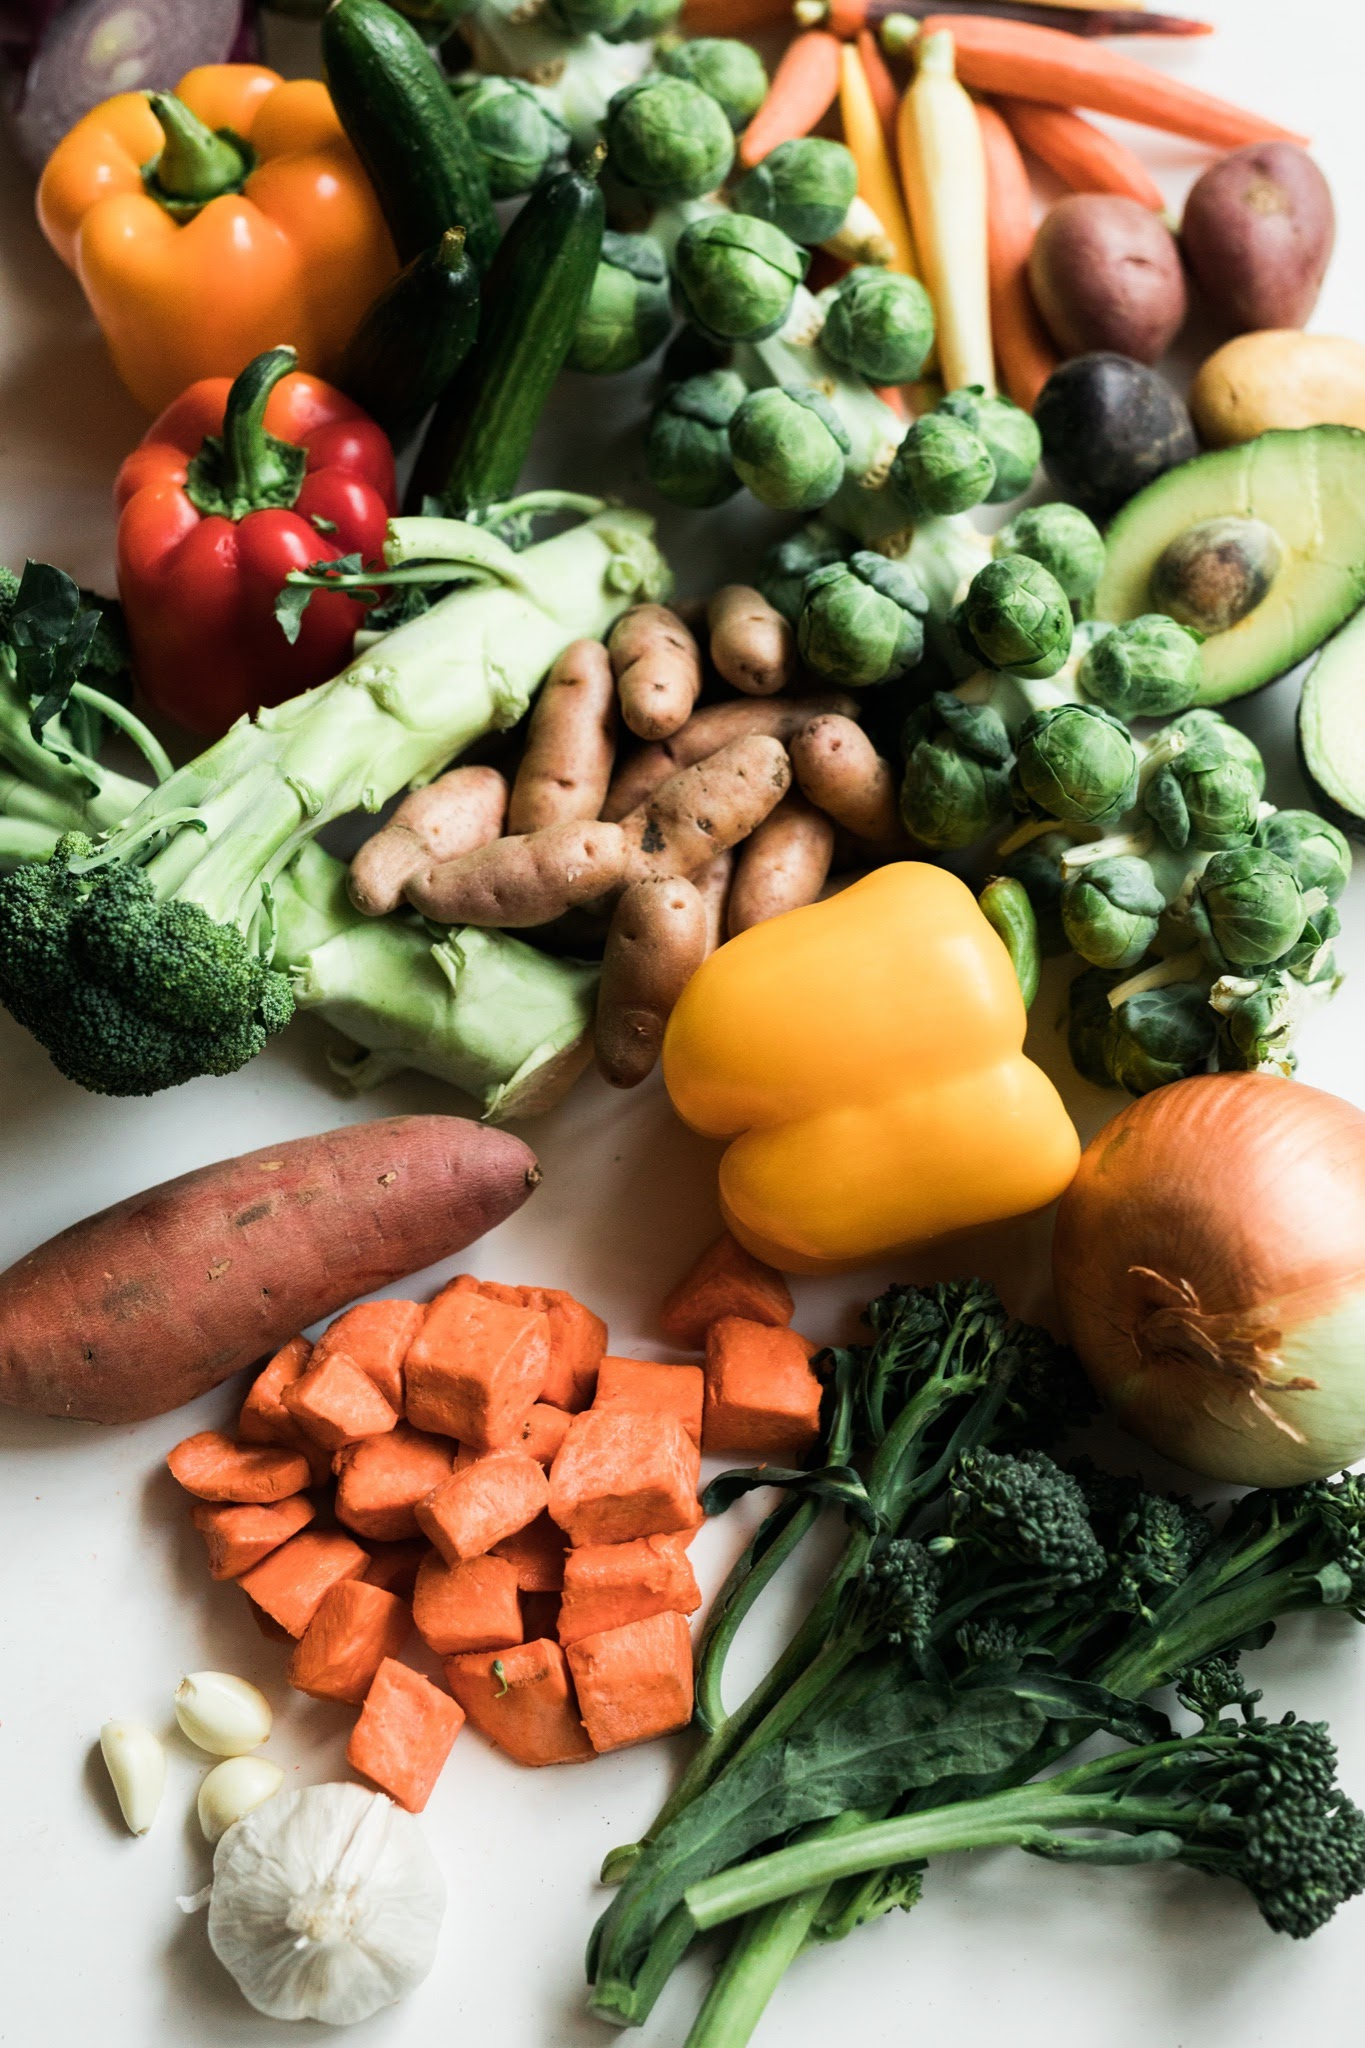 array of vegetables and starches